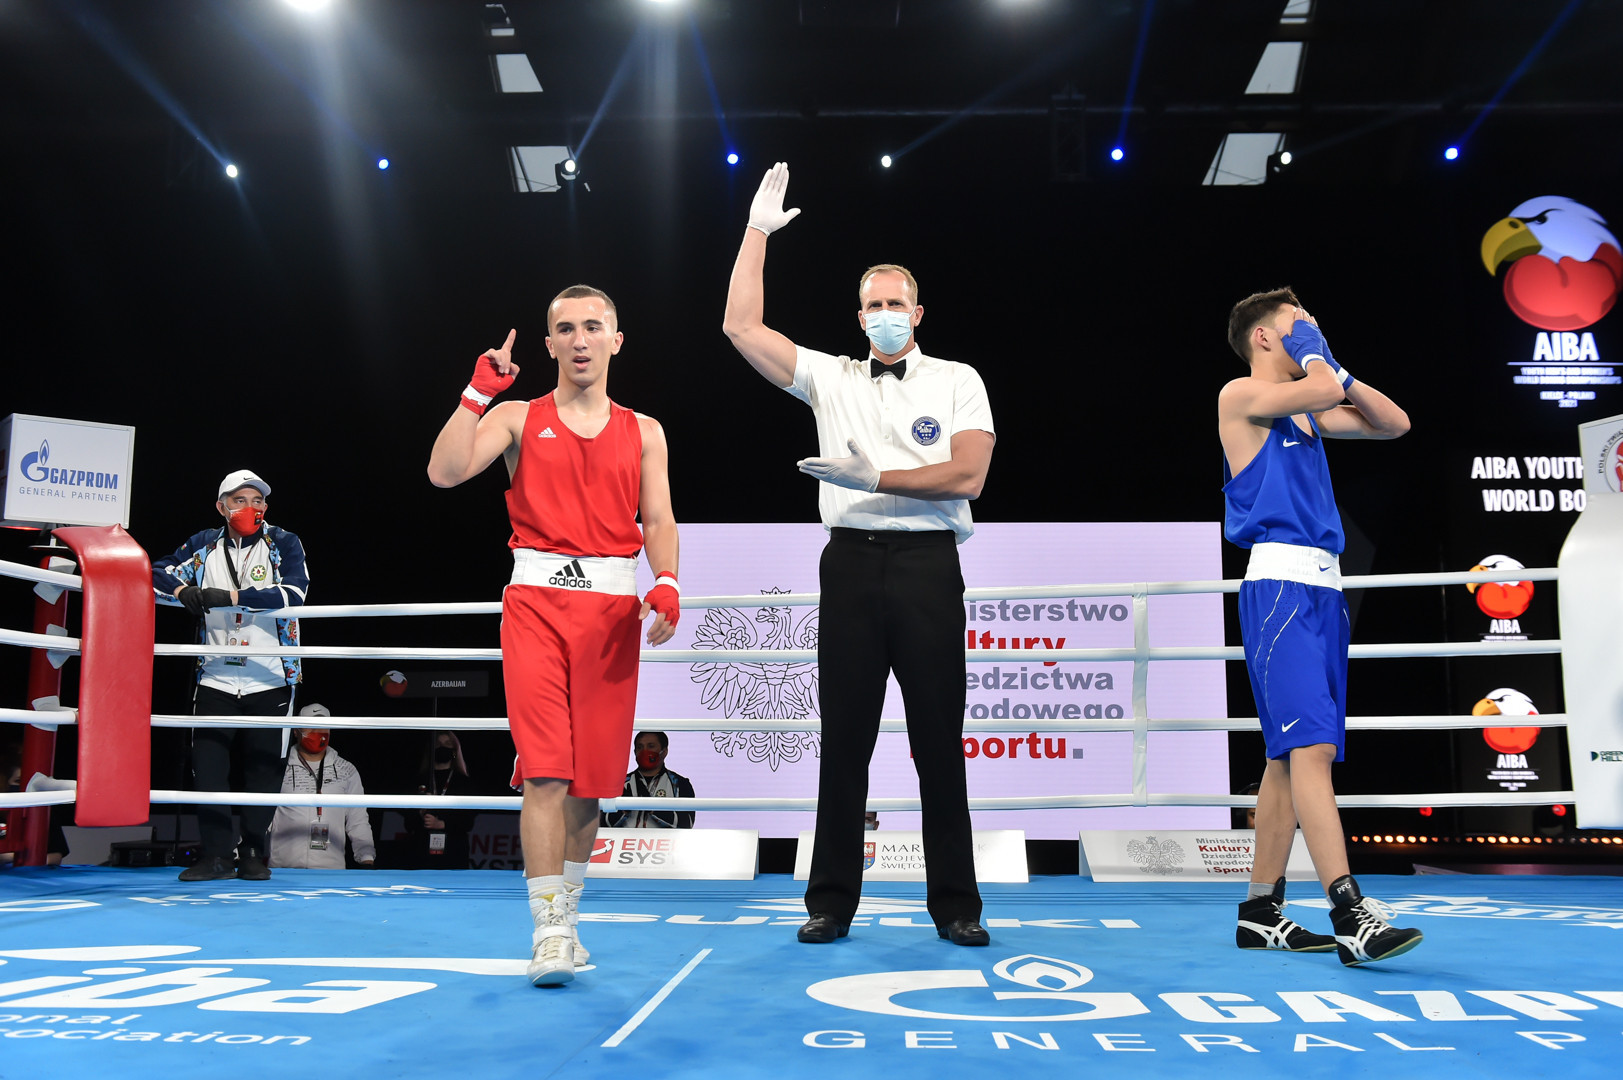 There was early disappointment for some in the early bouts ©AIBA